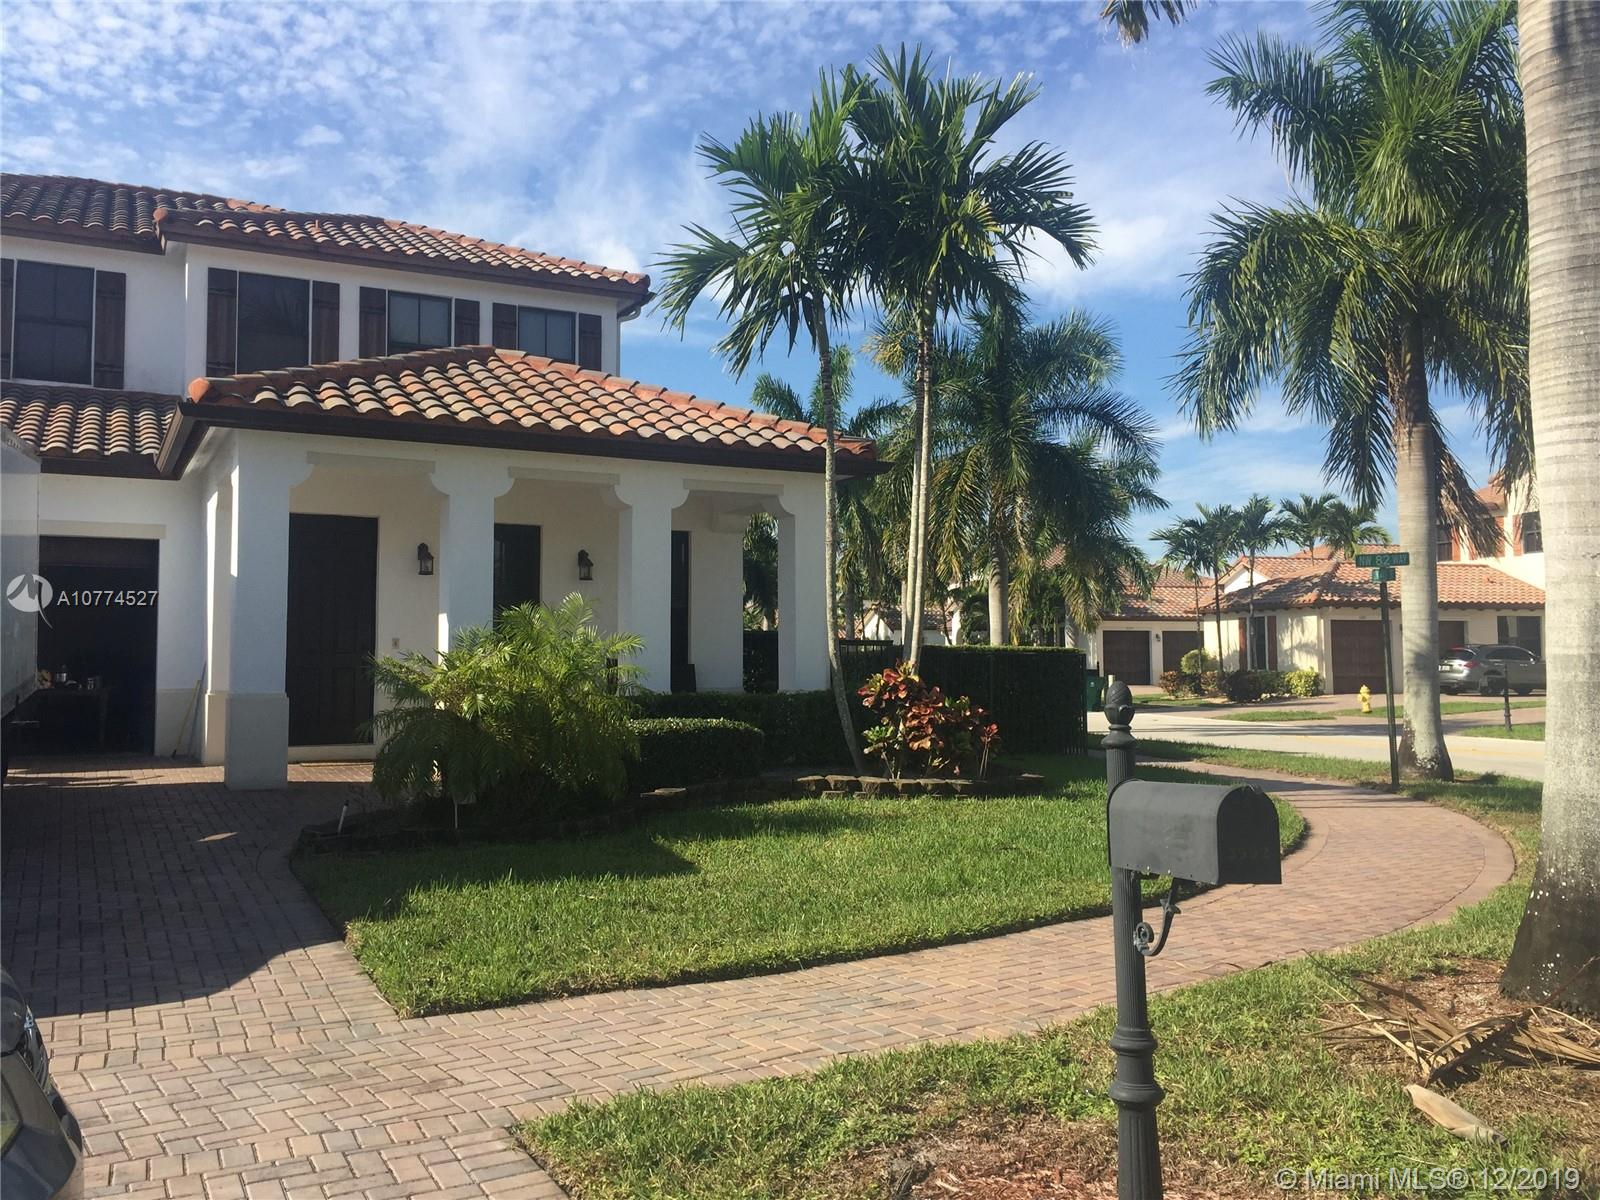 Listing A10774527 - Large Photo # 25